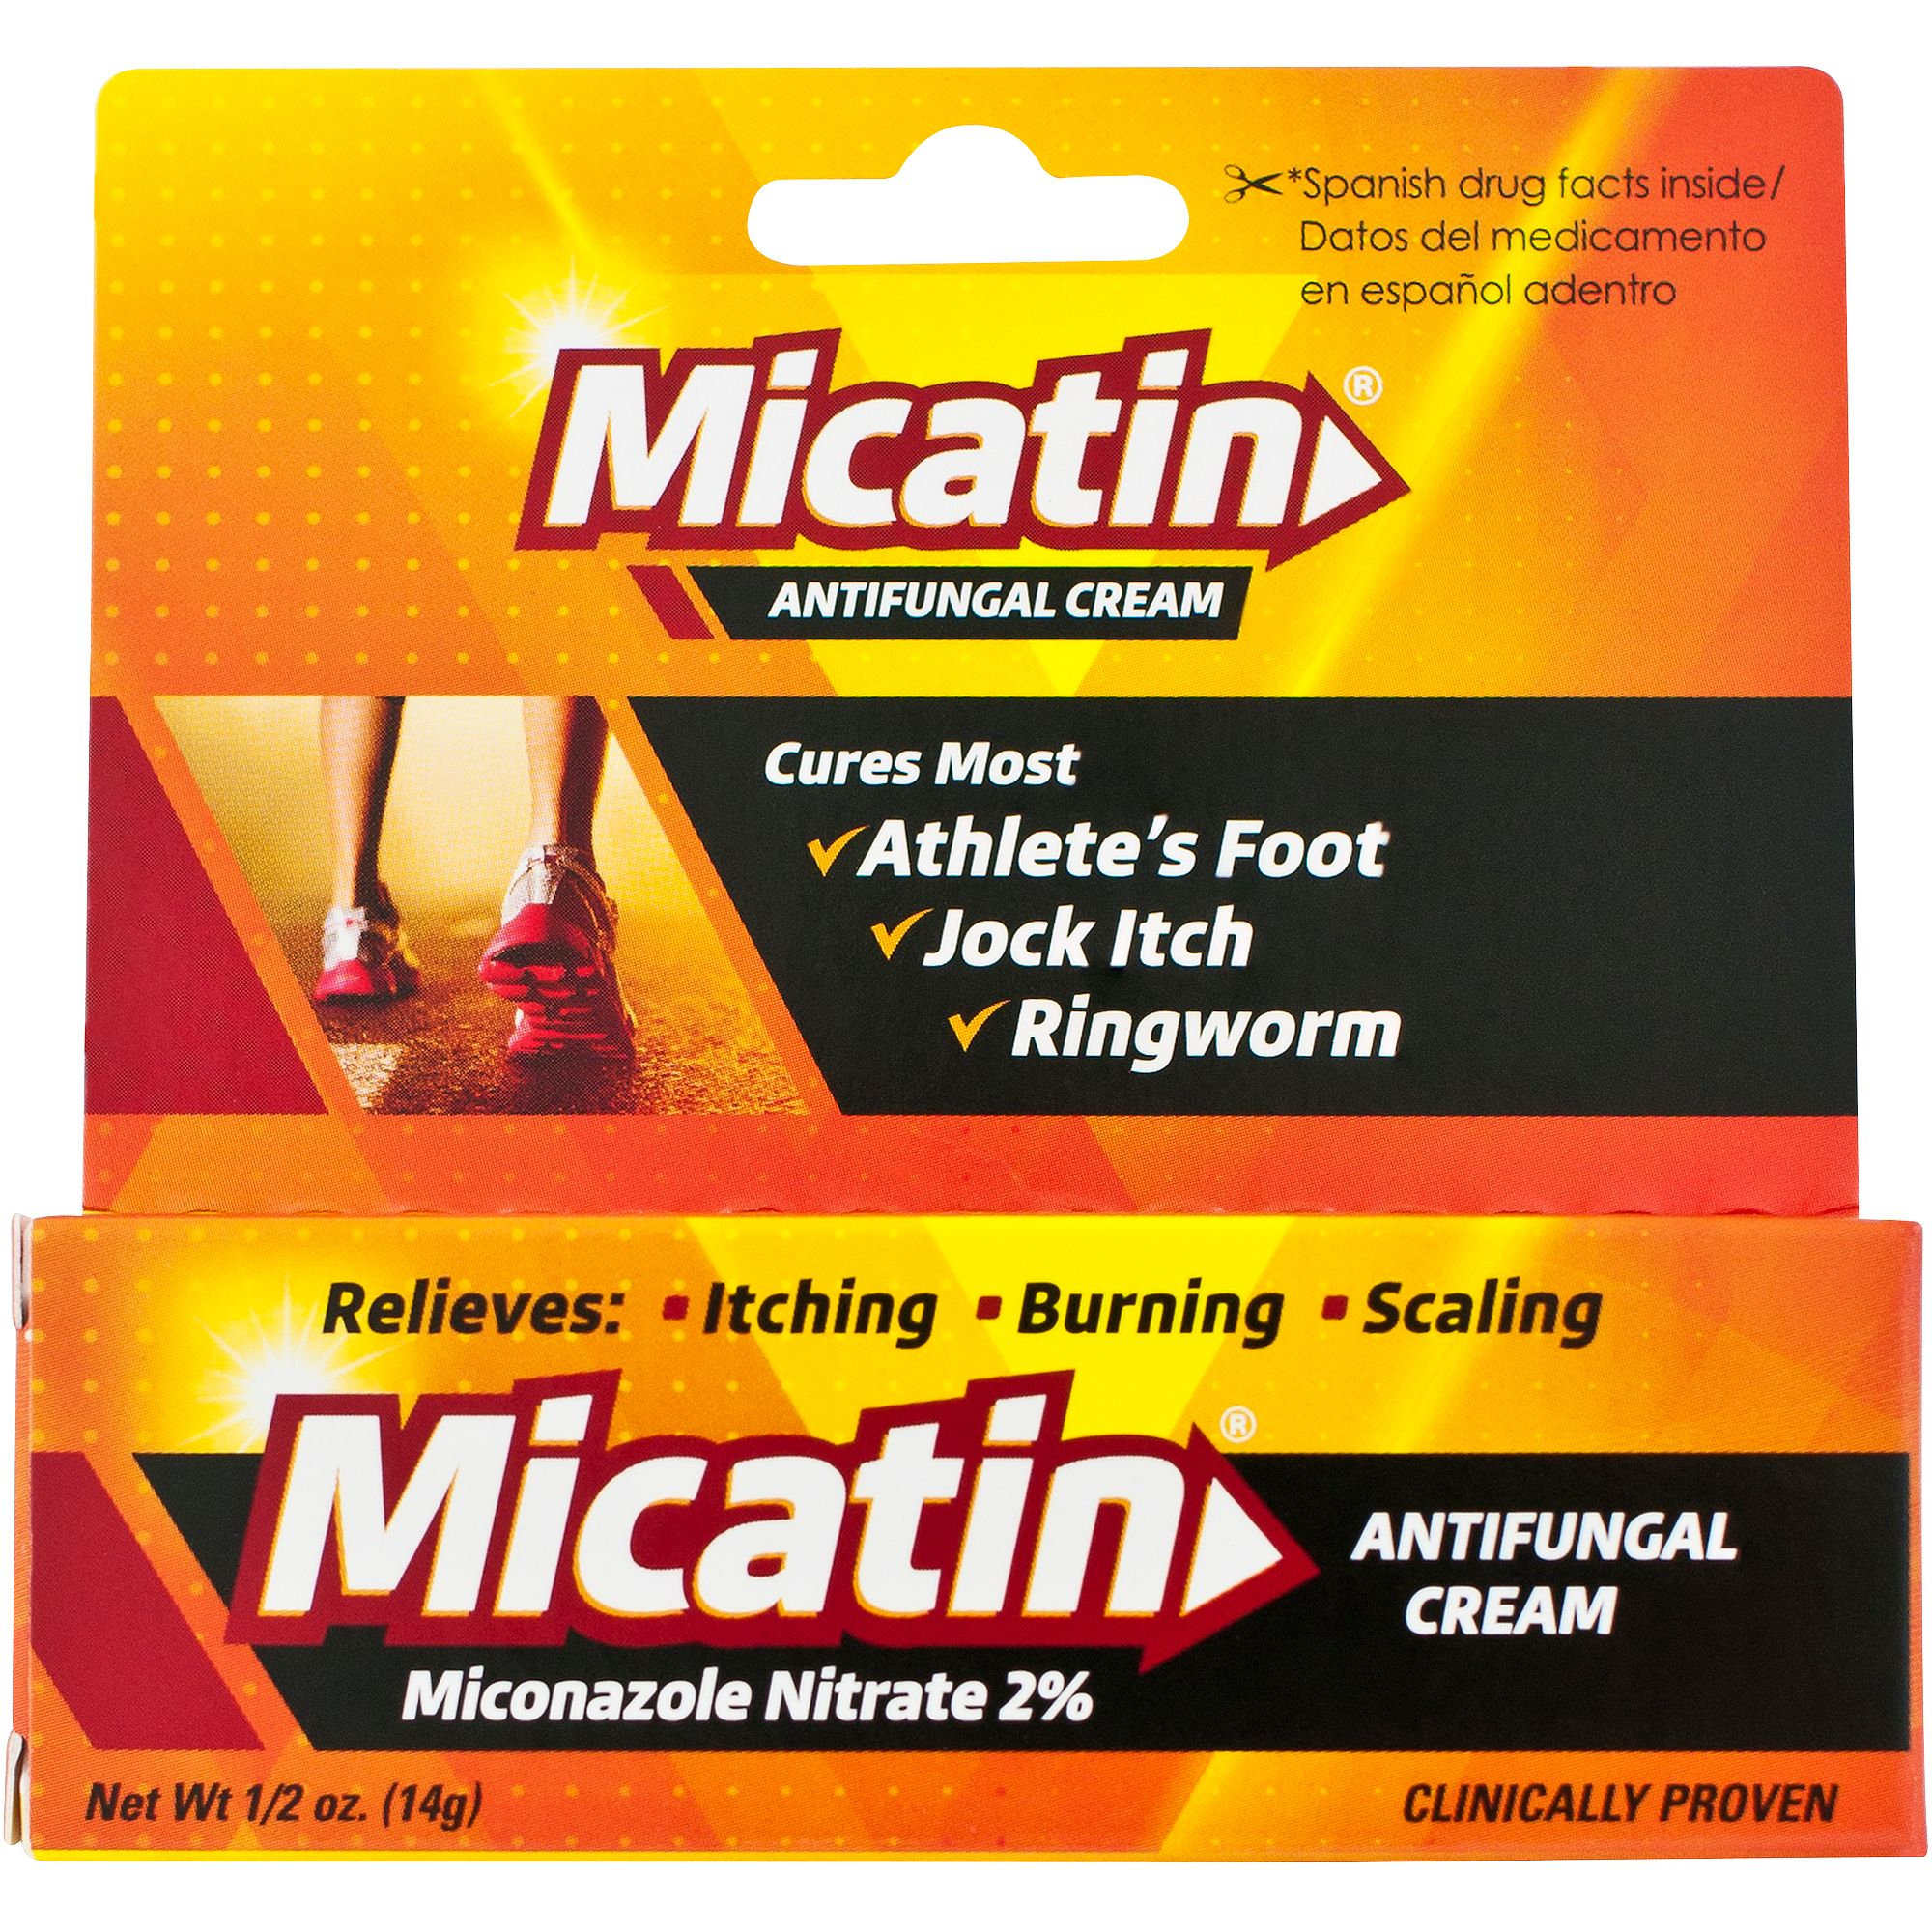 Micatin Athlete's Foot, Jock Itch, and Ringworm Antifungal Cream Relief - 0.5 oz